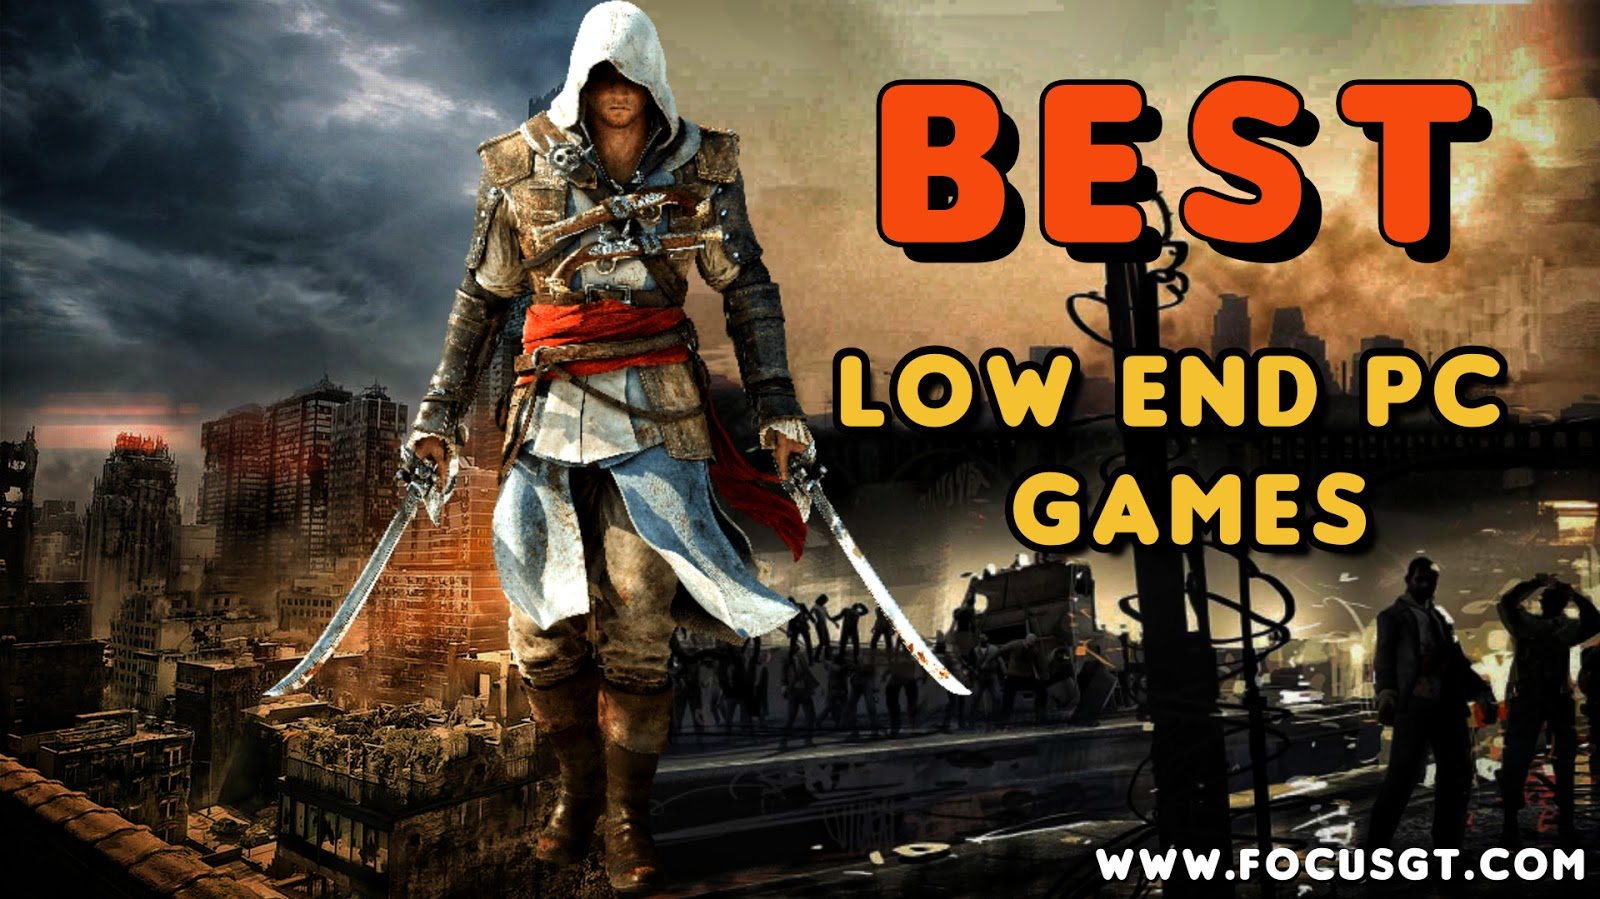 TOP 10 Games for Low END PC (64 MB / 128 MB / 256 MB VRAM / Intel GMA / Intel HD Graphics)